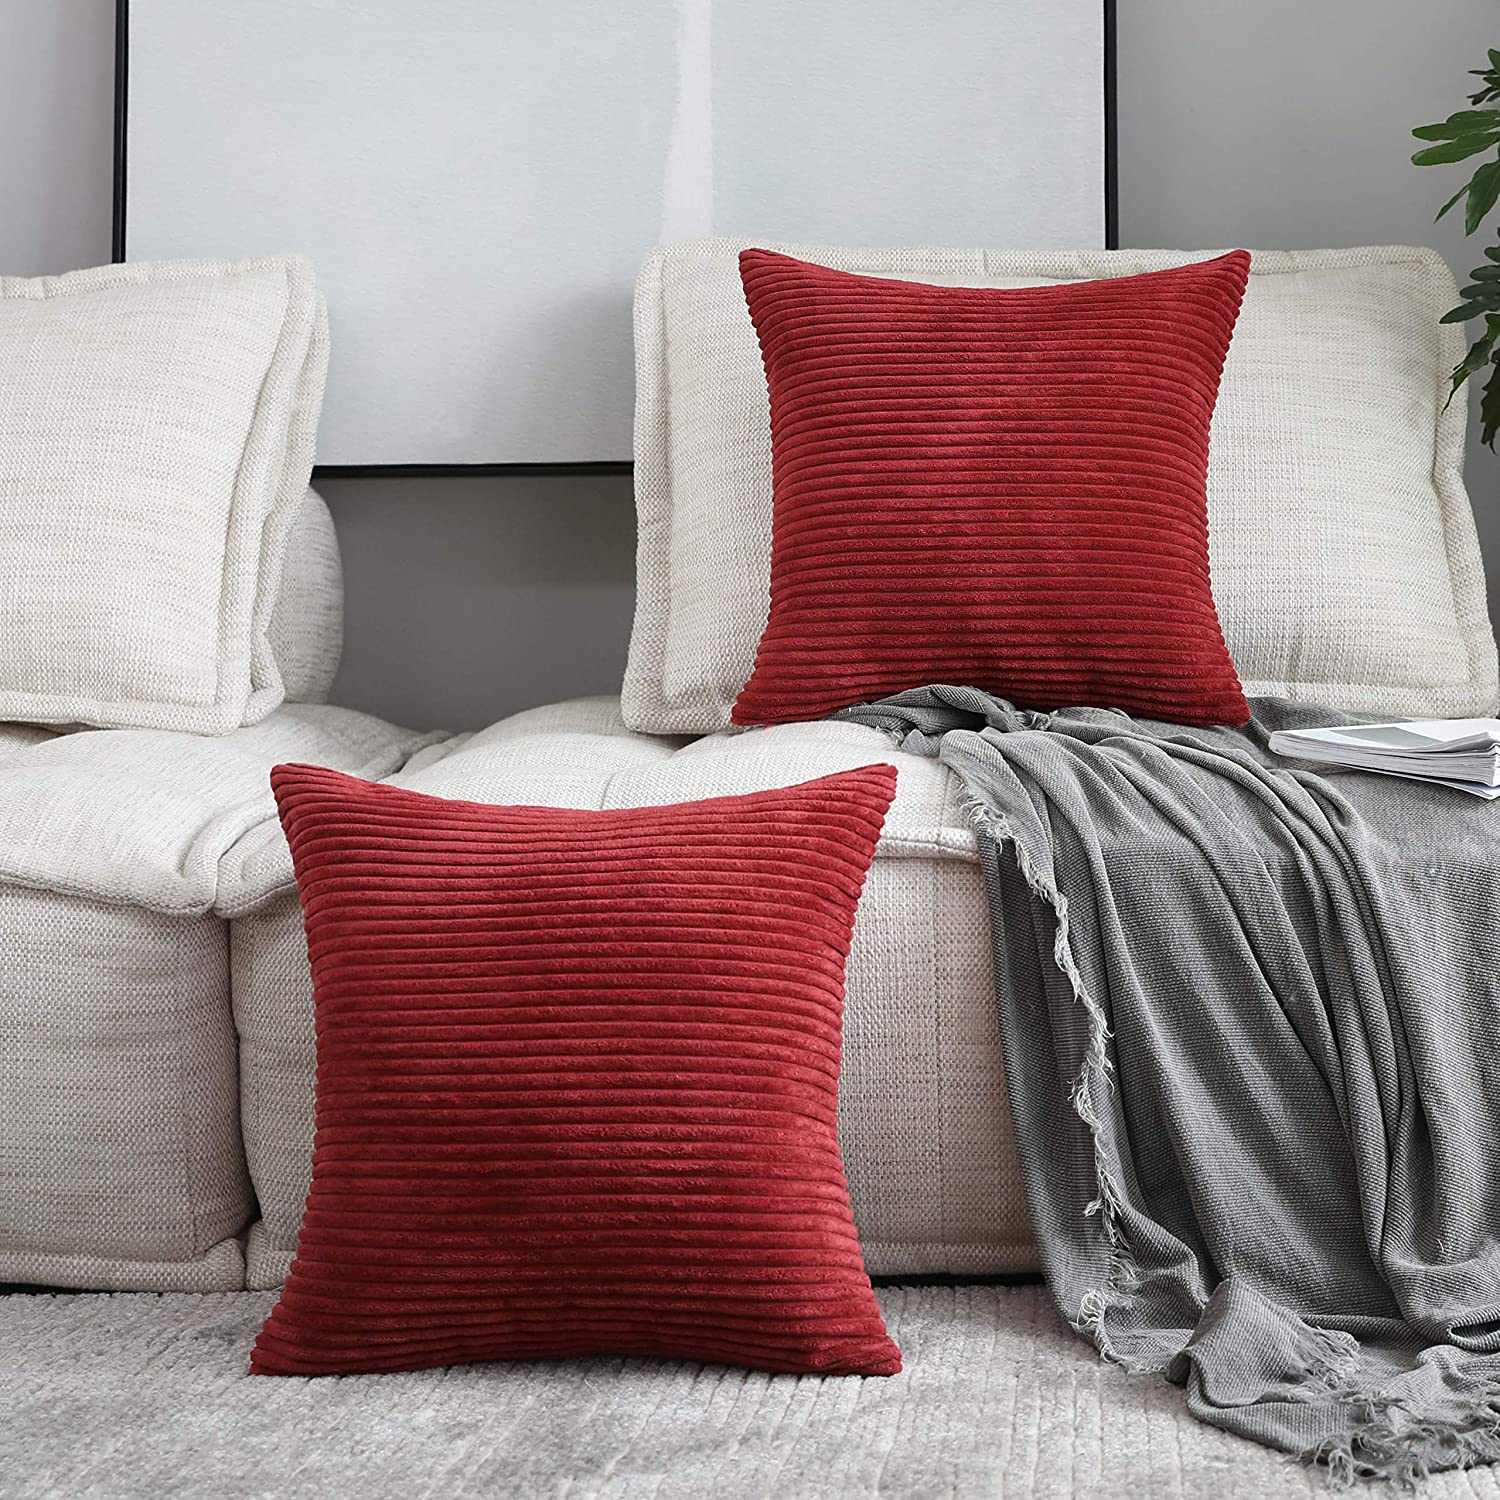 Home Brilliant 2 Packs Decorative Square Pillows Cover Outdoor Throw Pillows Cushion Covers for Chair, 16 x 16 inches, 40cm, Dark Red